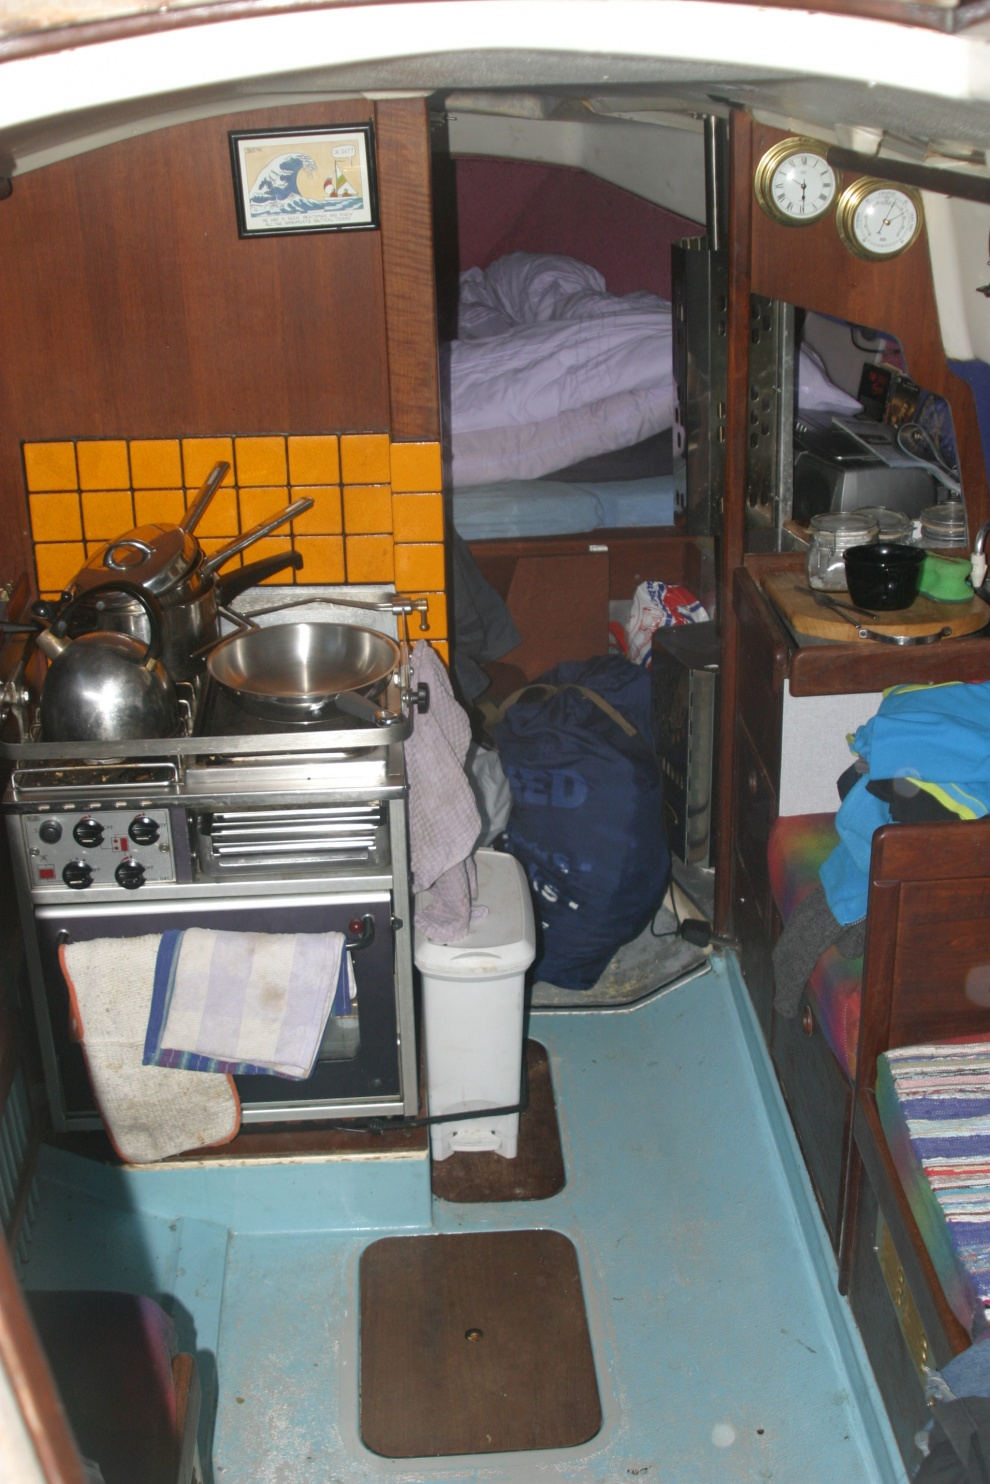 Click image for larger version  Name:Interior showing my fab cooker.jpg Views:243 Size:408.5 KB ID:73098